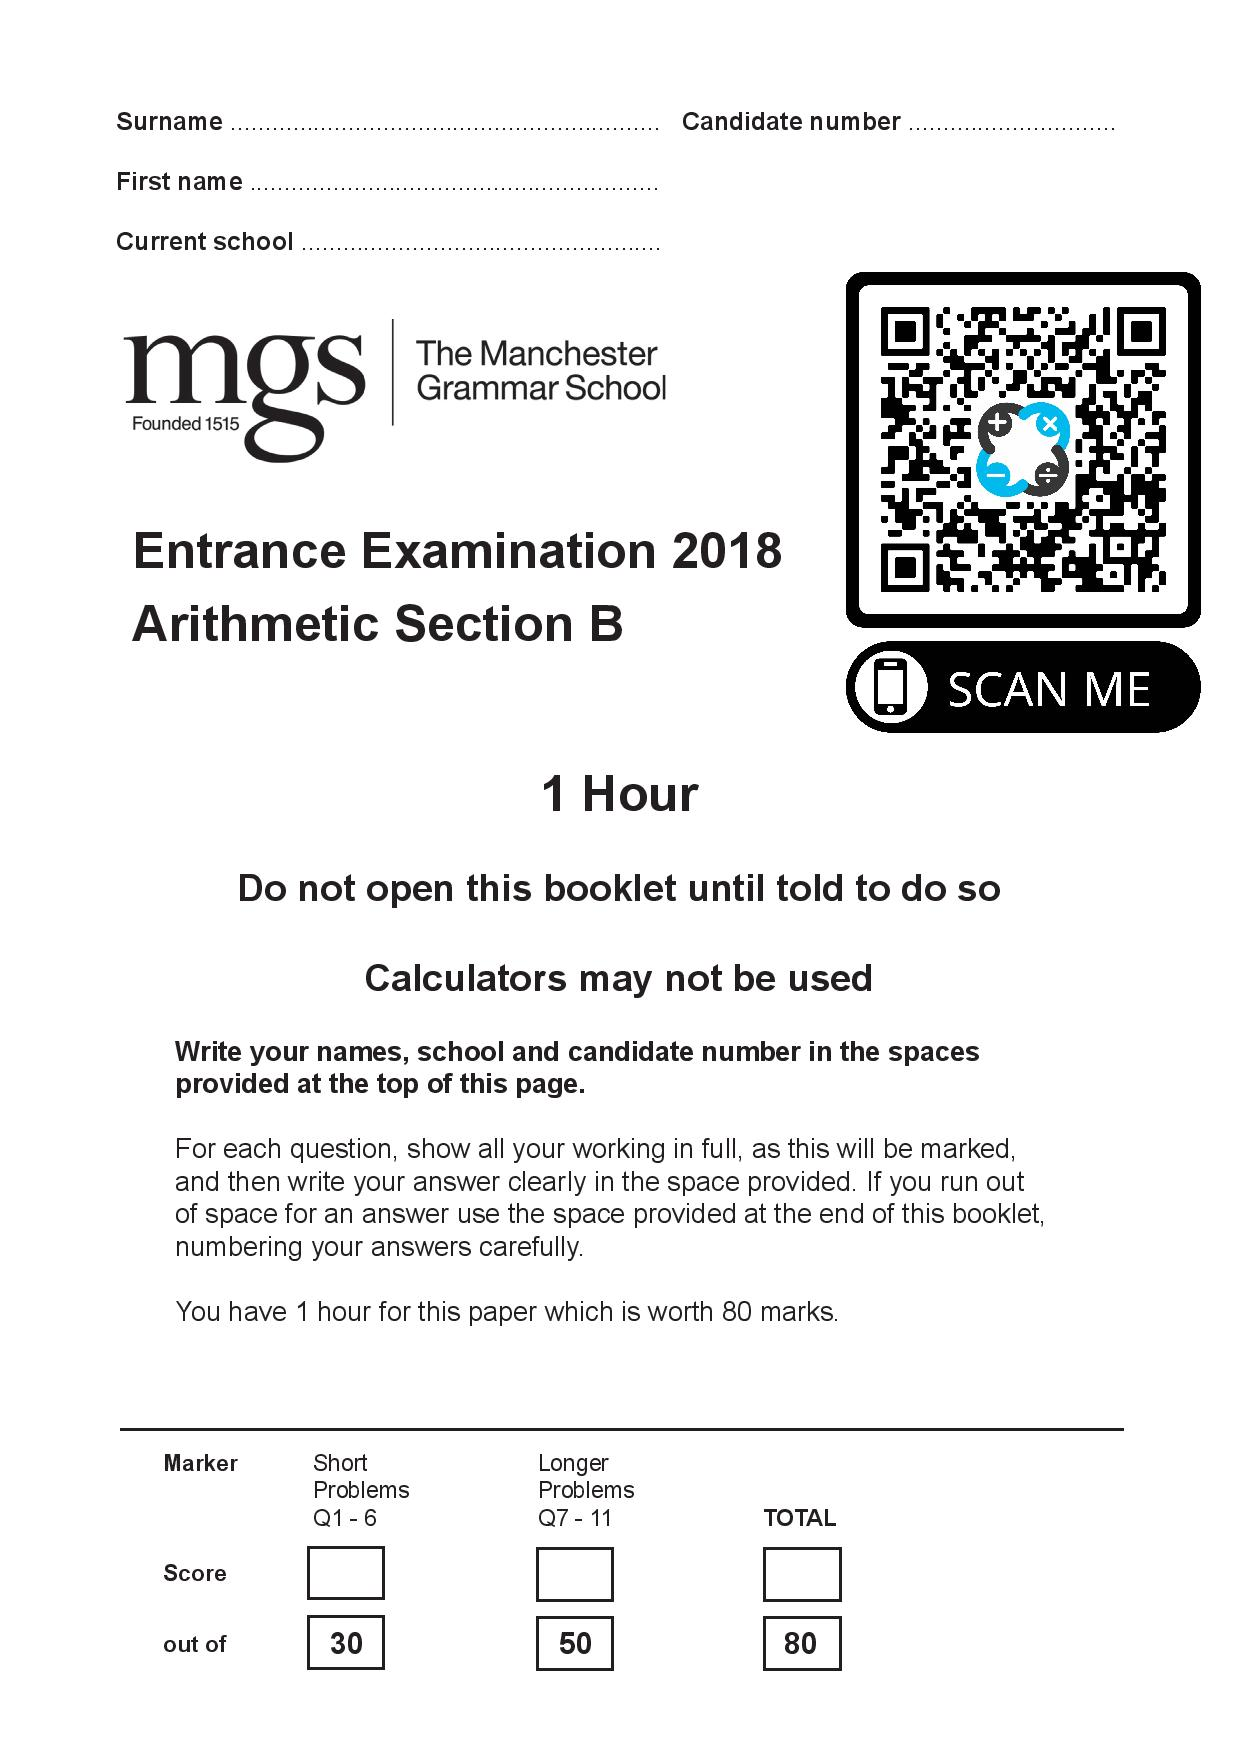 The Manchester Grammar School Entrance Examination 2018 Arithmetic Section B Questions Paper page 001